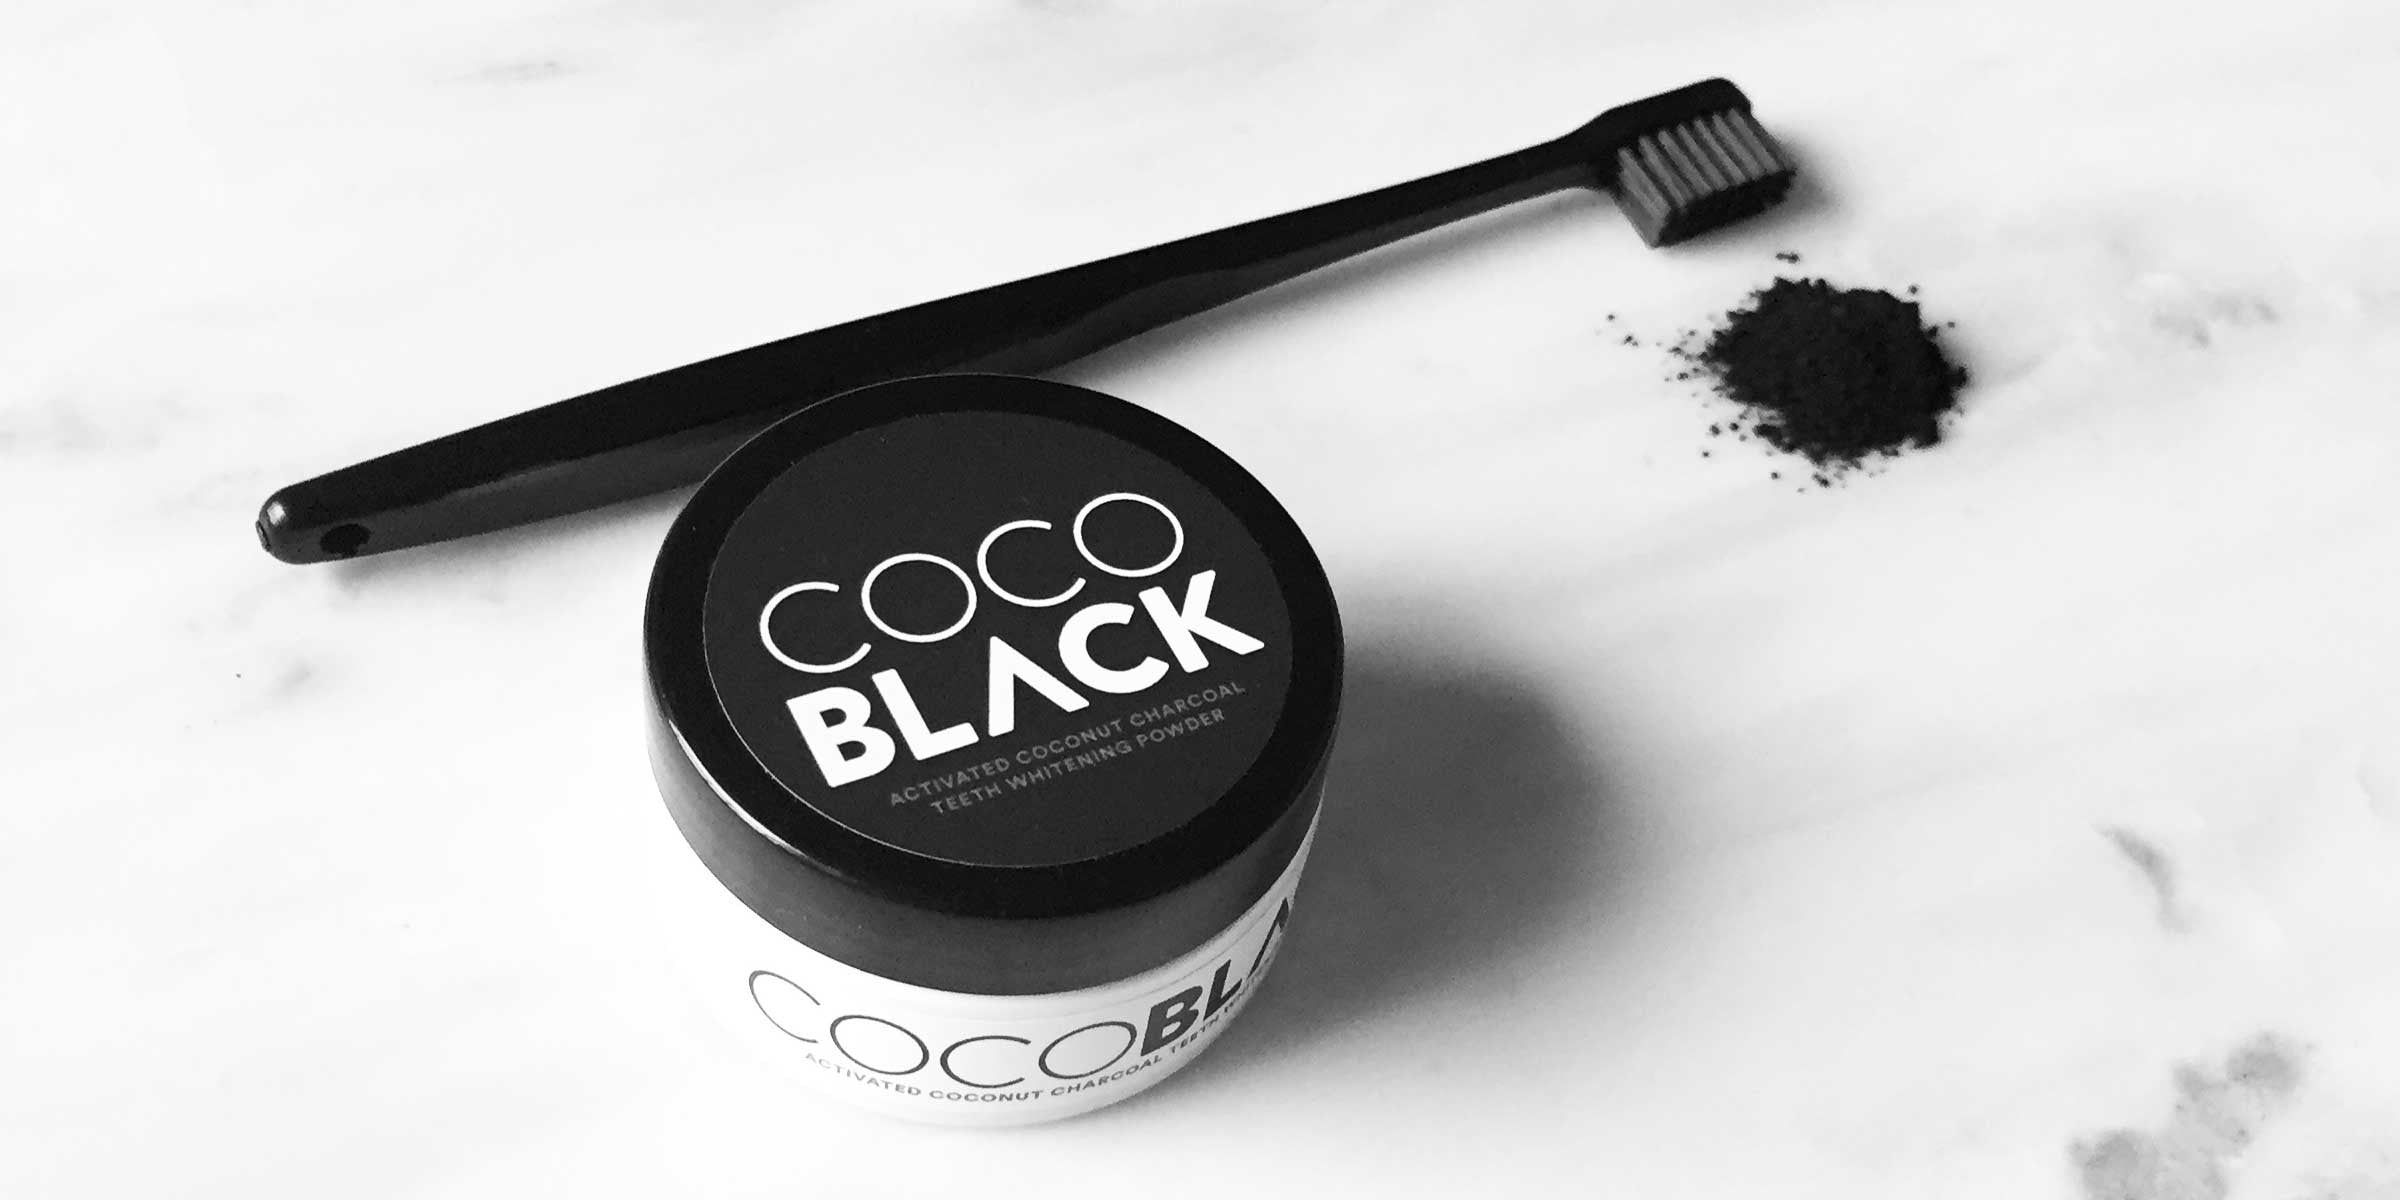 Stylised Activated Charcoal Teeth Whitening Powder With Toothbrush